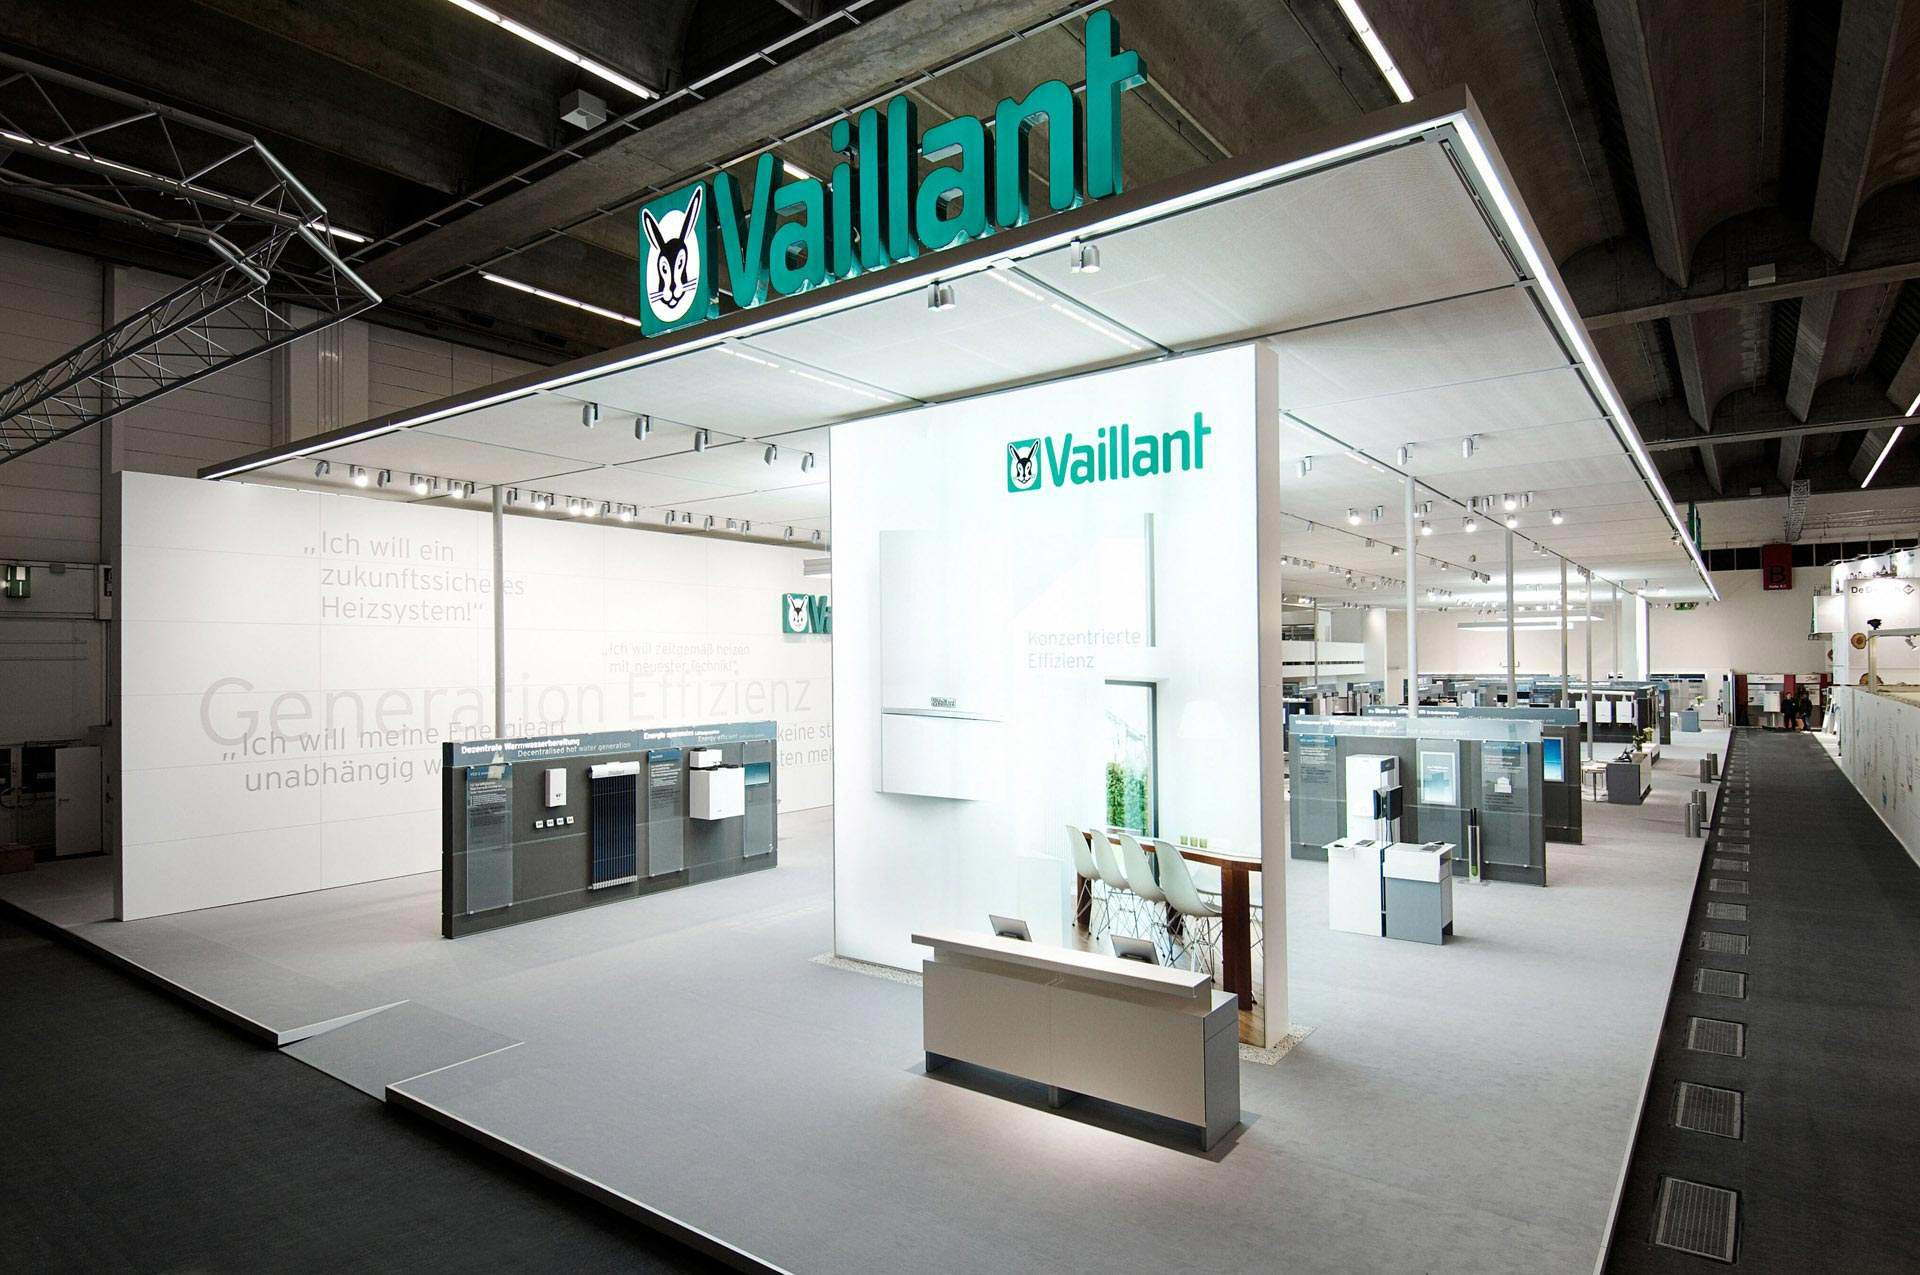 vaillant messestand neuer markenauftritt im raum. Black Bedroom Furniture Sets. Home Design Ideas